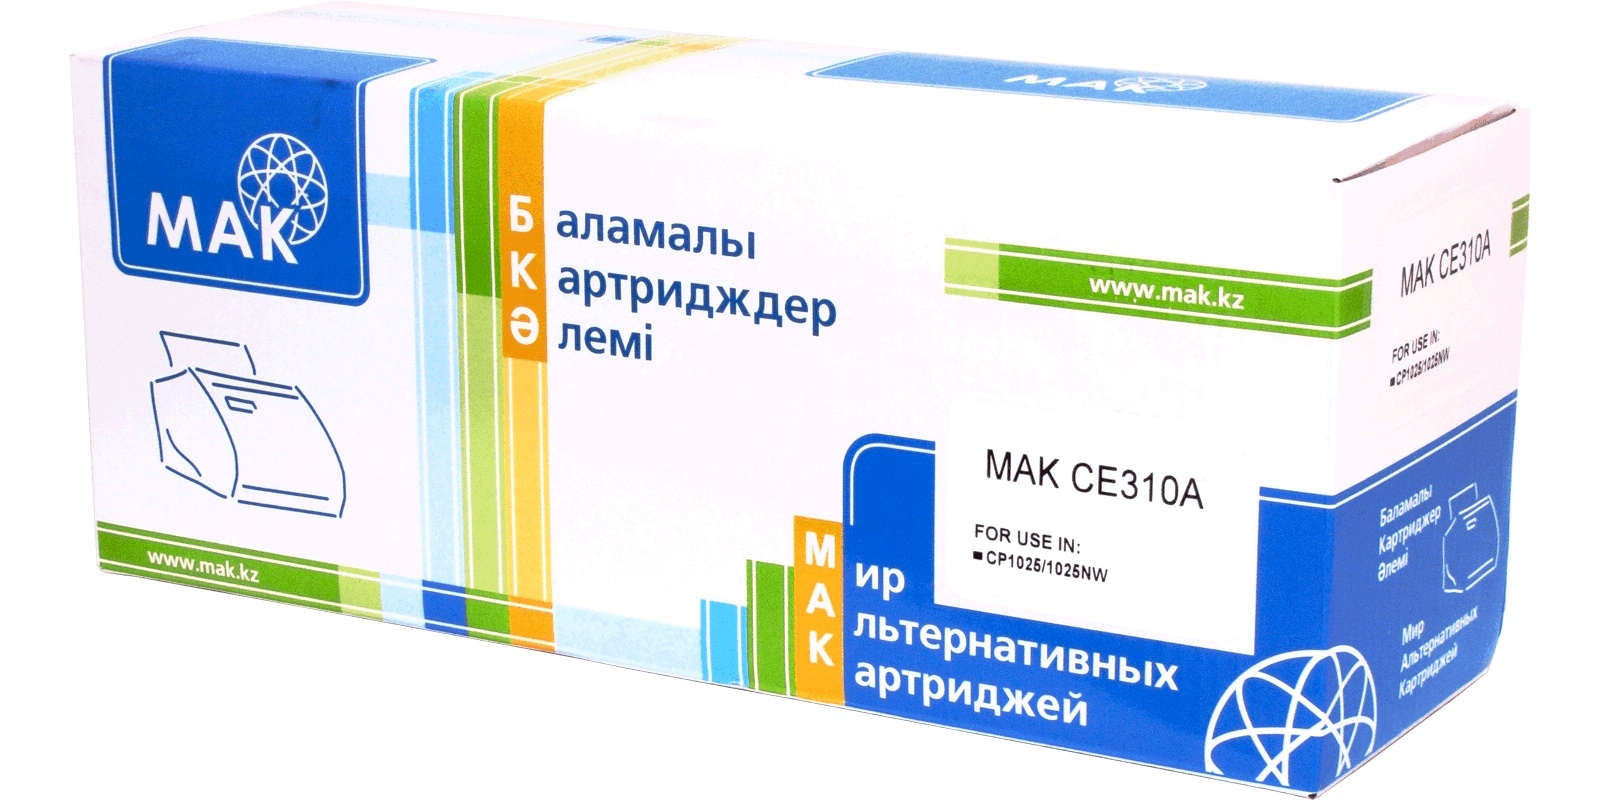 MAK №126A CE310A/Cartridge 729Bk черный, для HP/Canon, до 1200 стр.